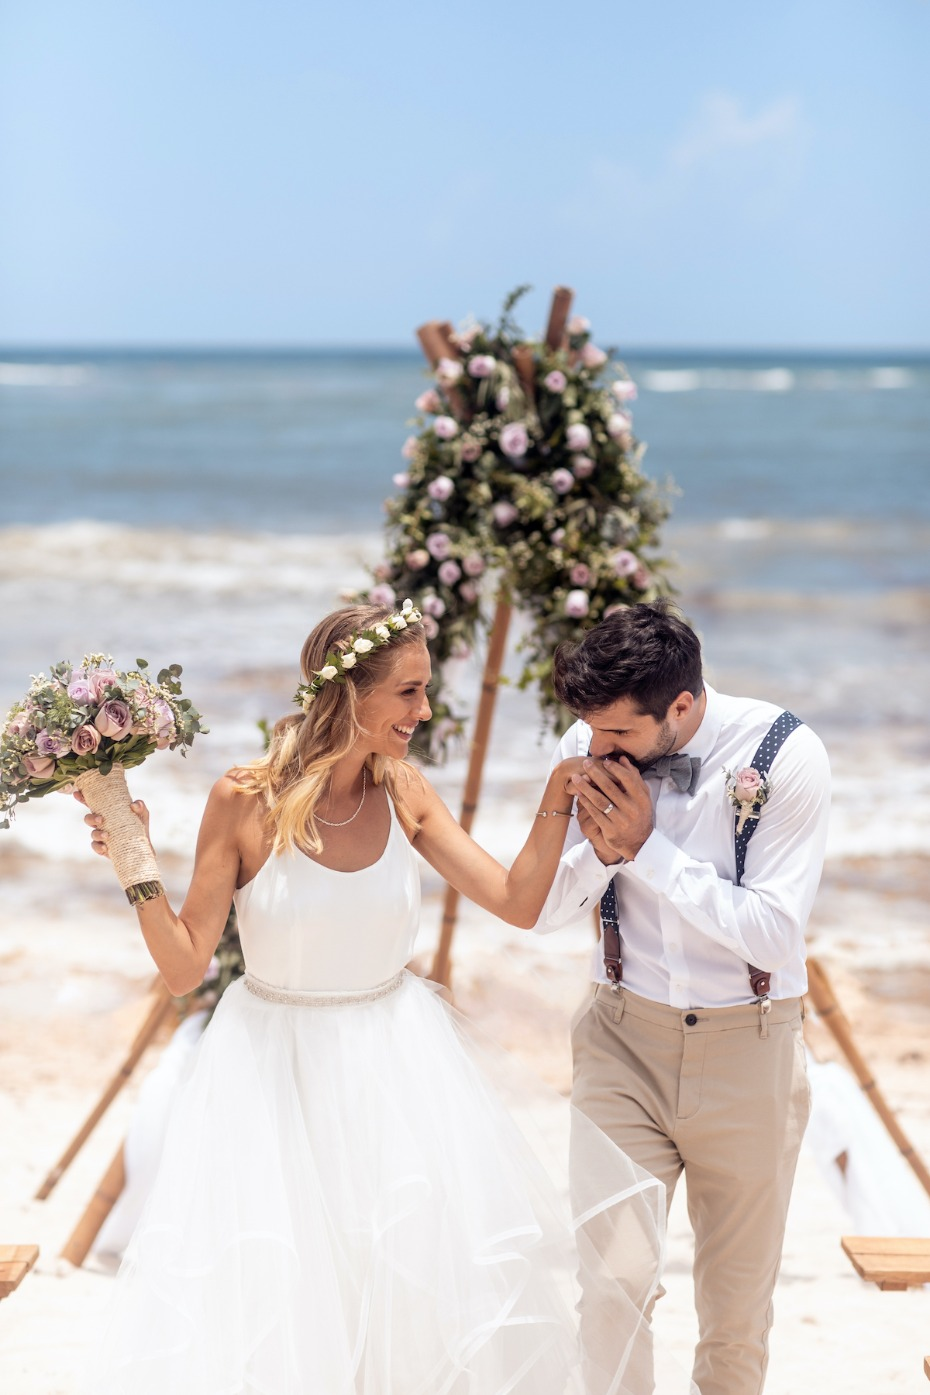 5 Reasons You'll Want to Have Your Postponed Wedding In Paradise